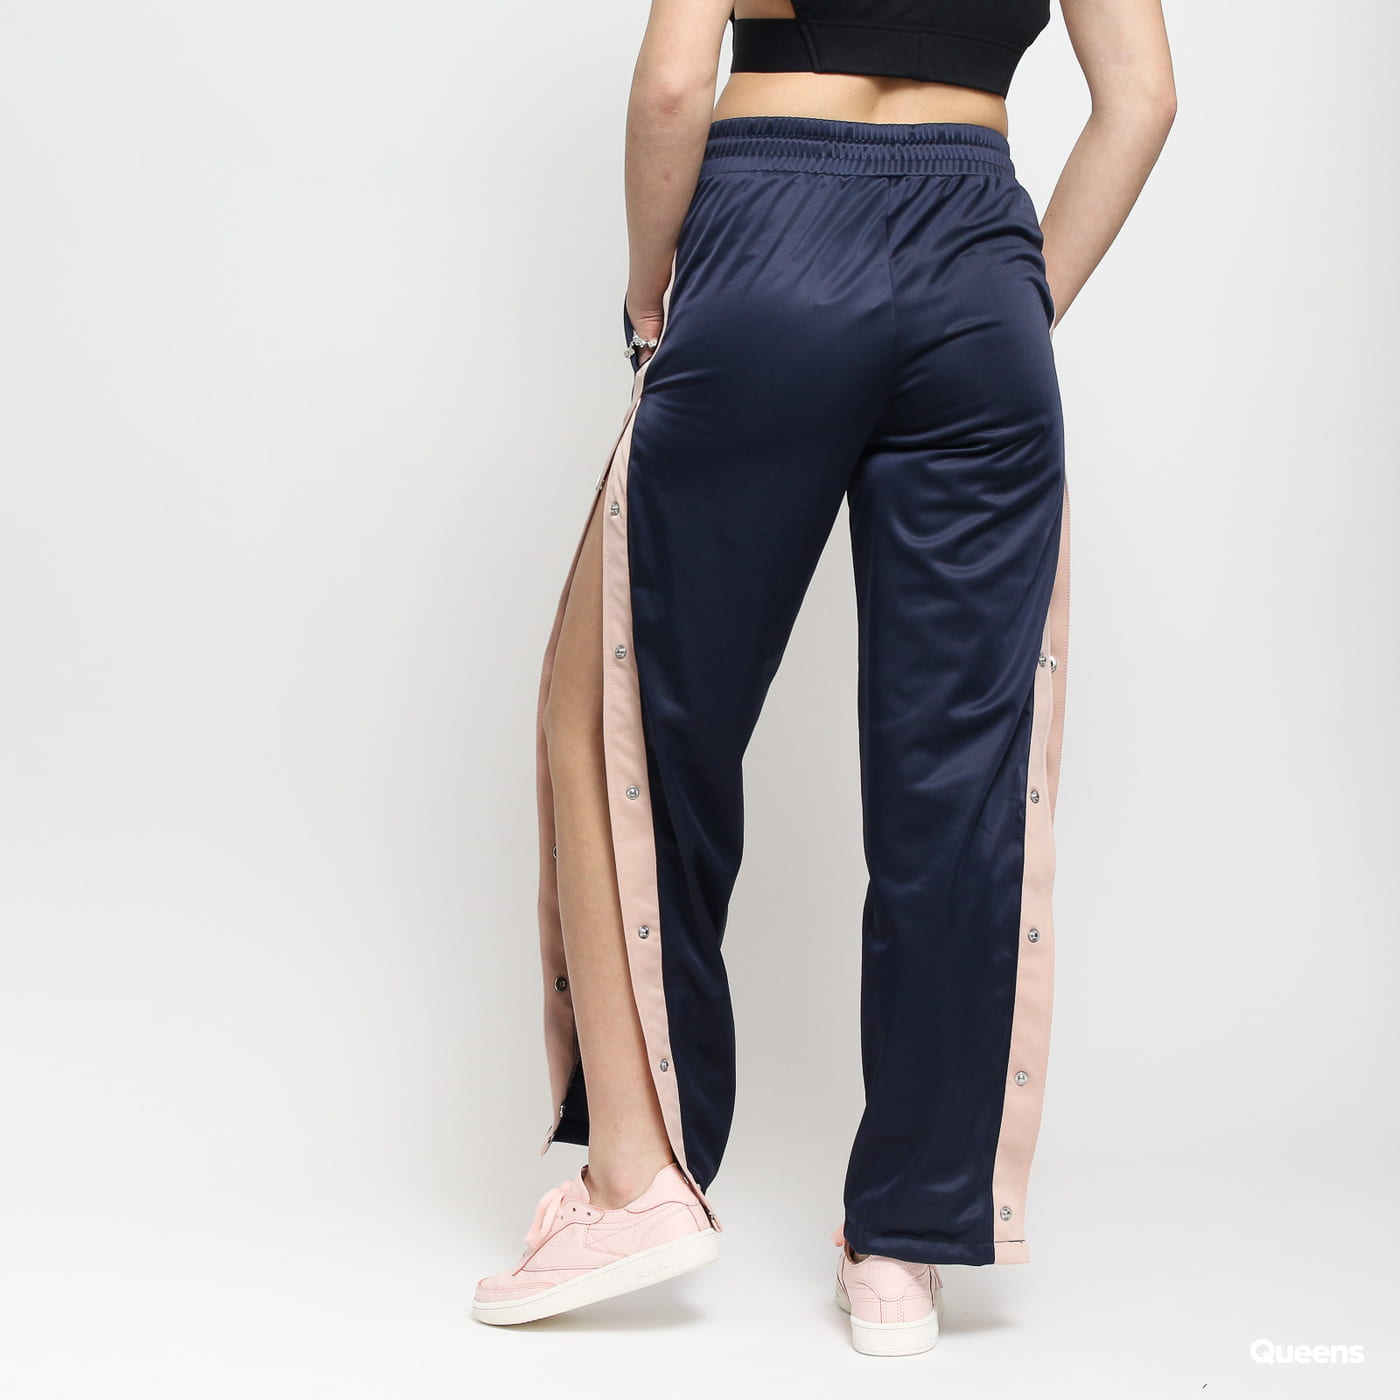 Urban Classics Ladies Button Up Track Pants navy / hellrosa